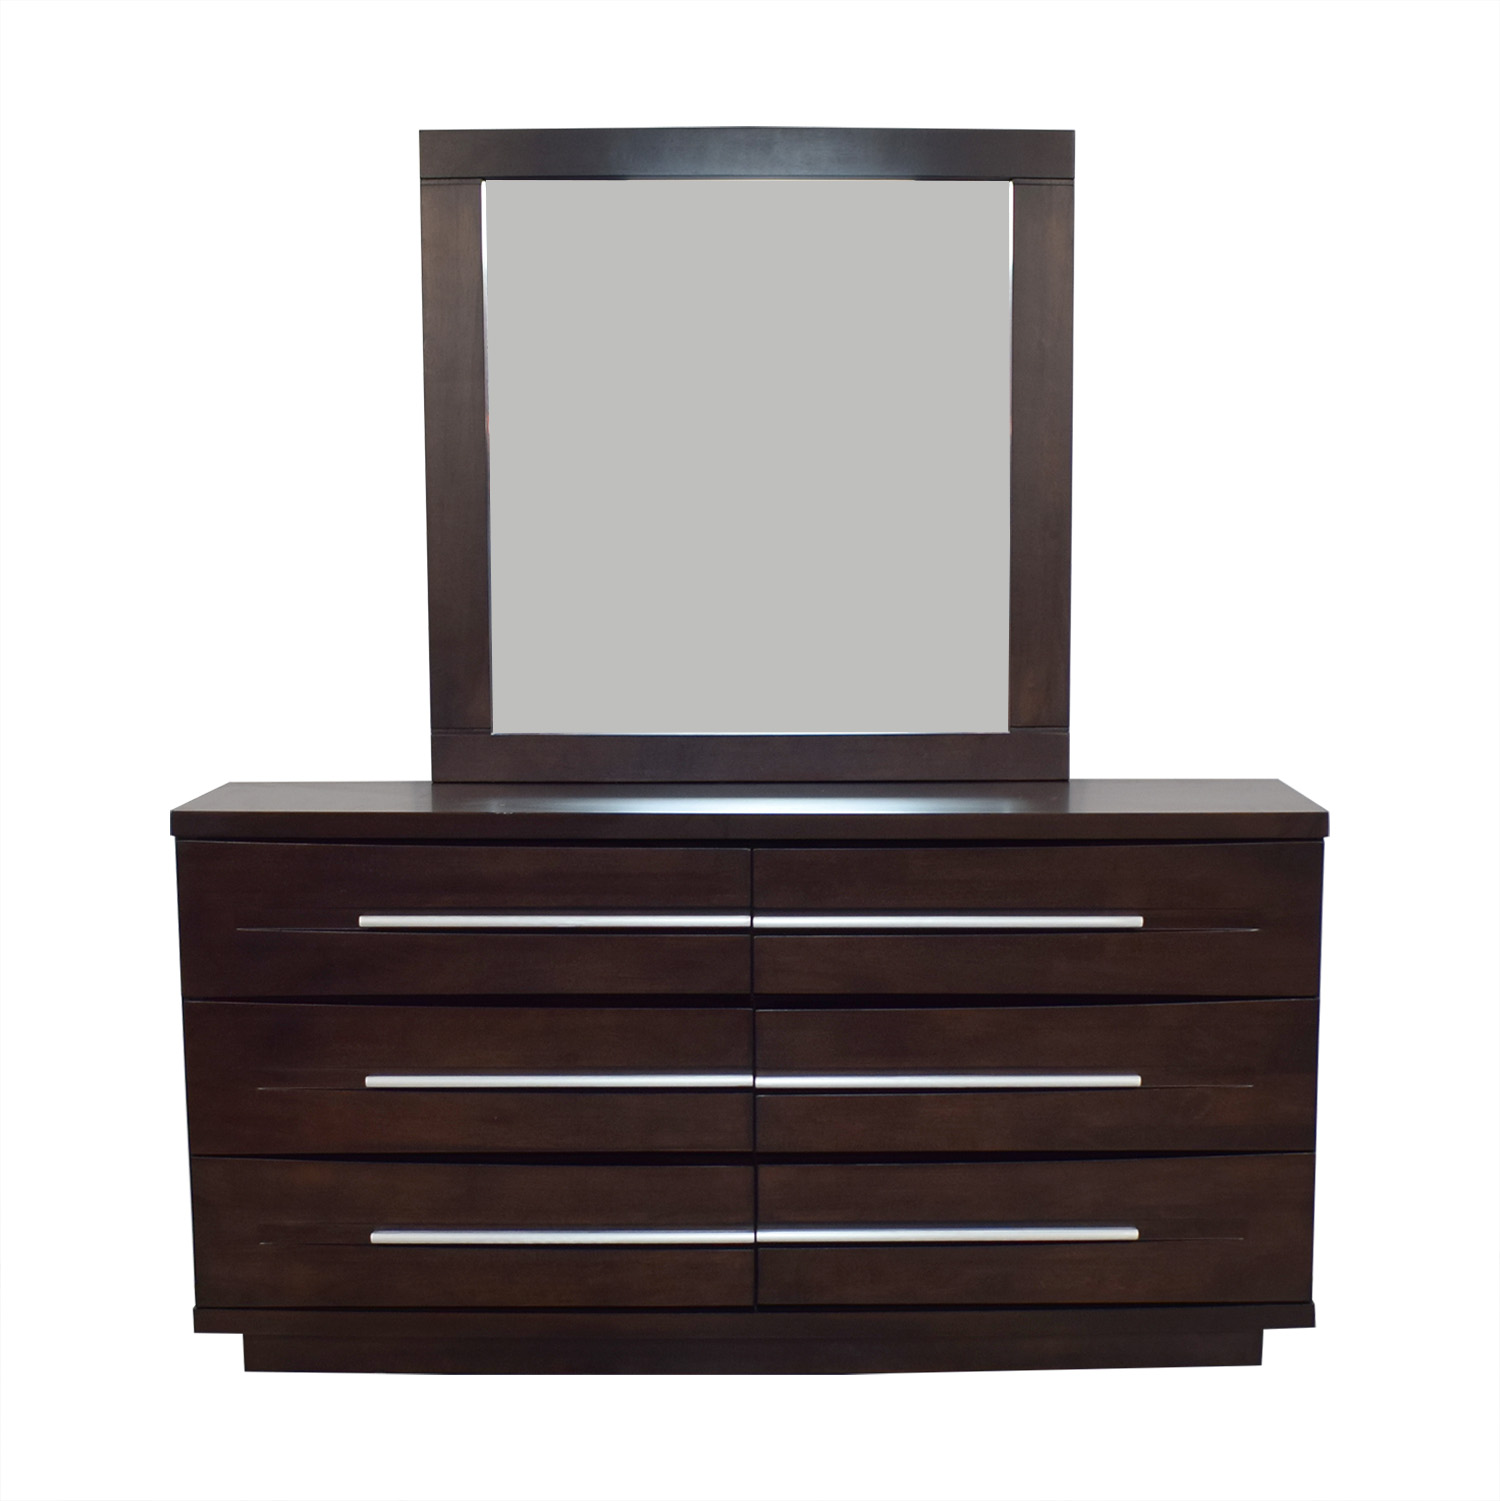 Casana Furniture Casana Furniture Dresser with Mirror nyc